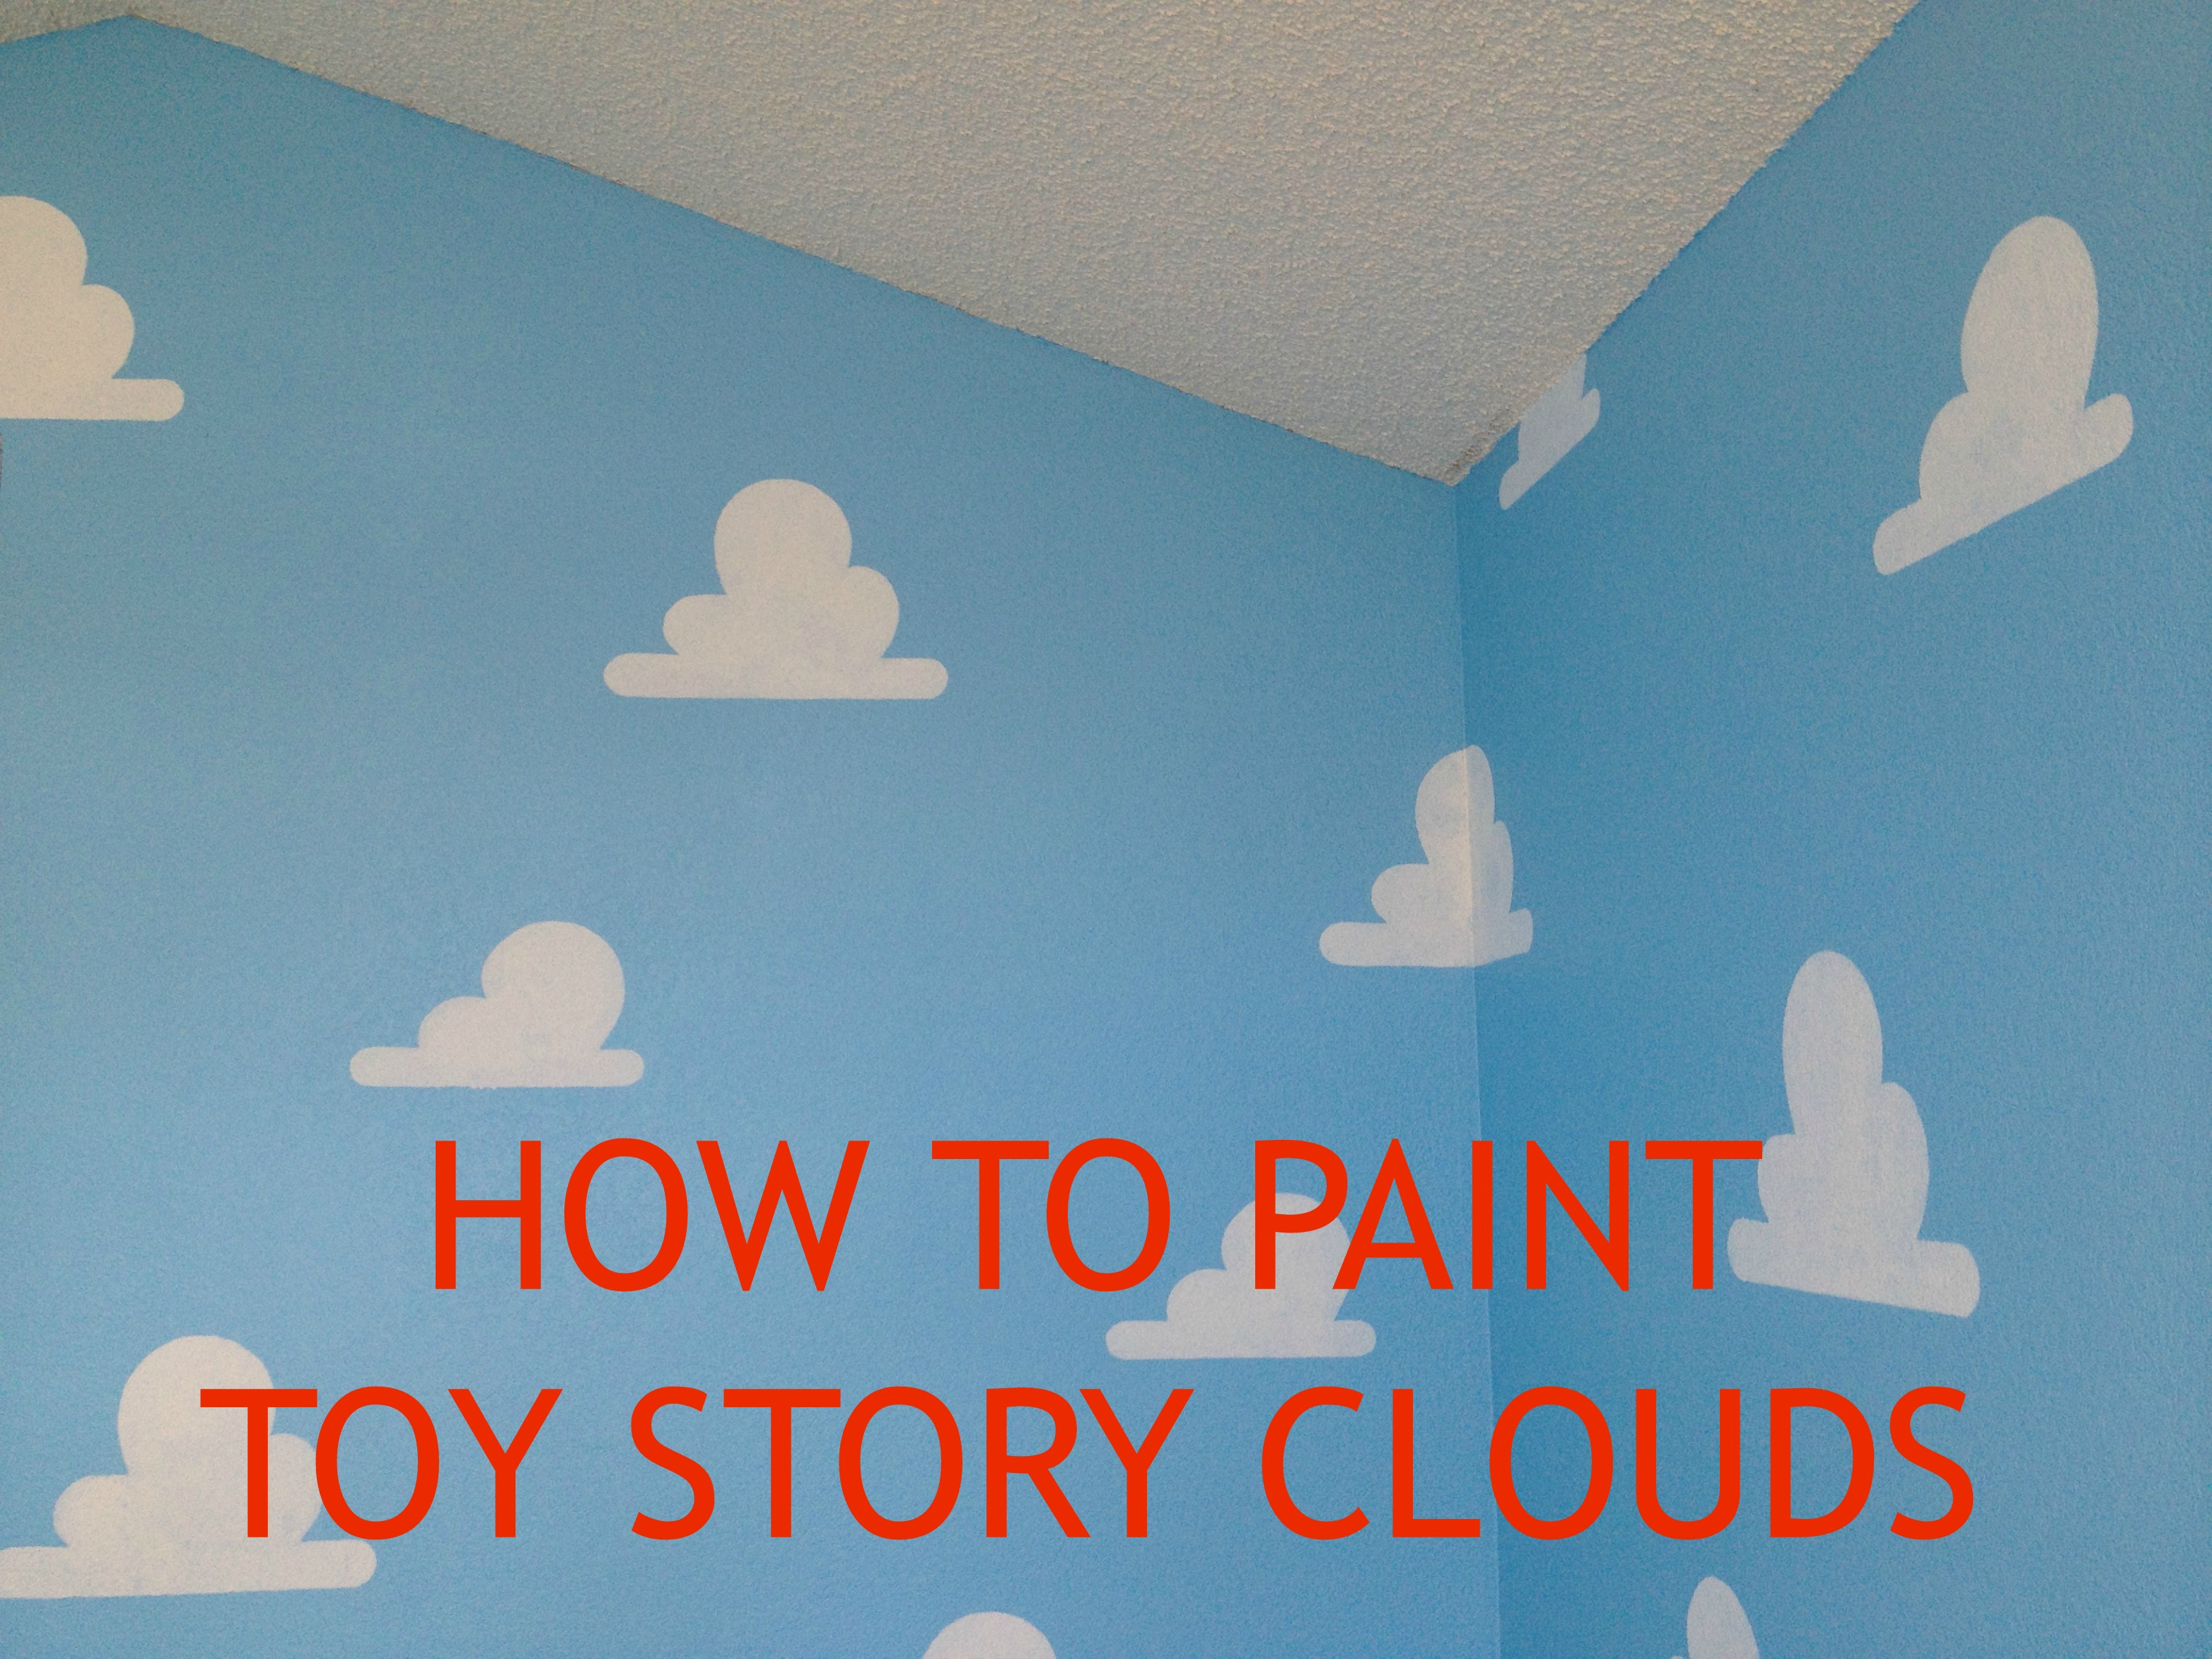 pics photos clouds wall toy story 3840x2400 wallpaper